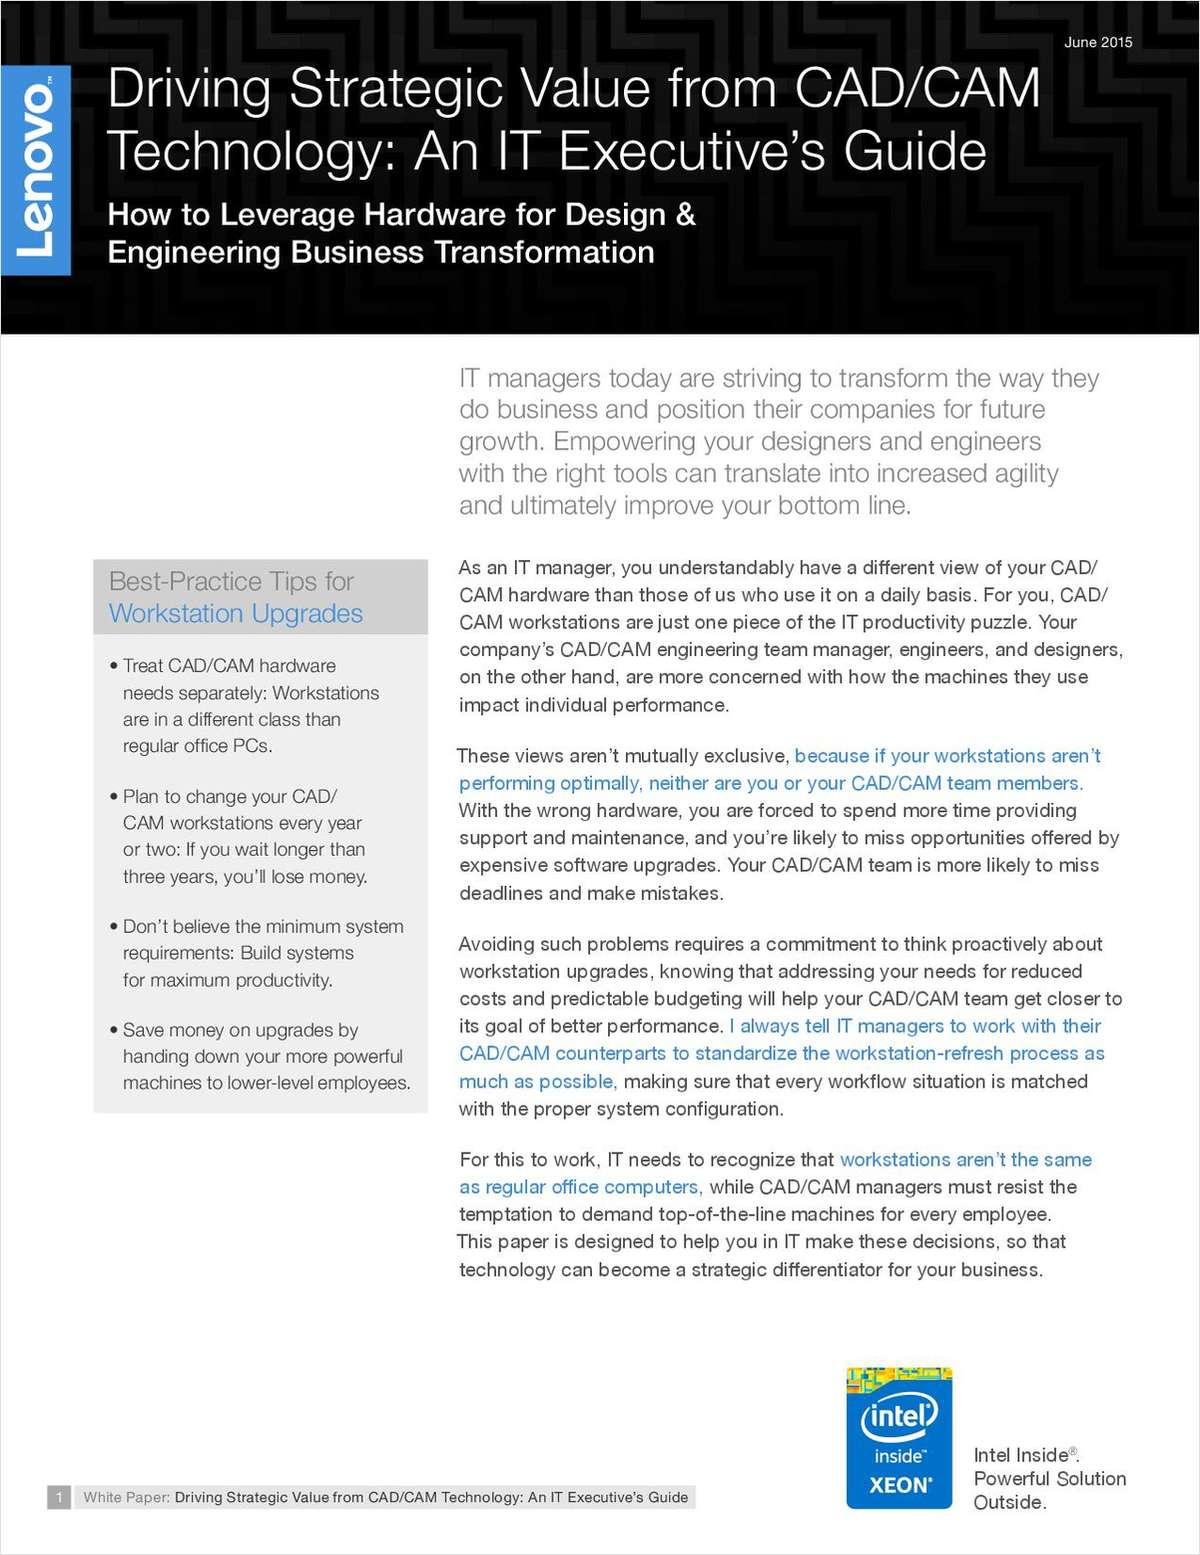 Driving Strategic Value from CAD/CAM Technology: An IT Executive's Guide